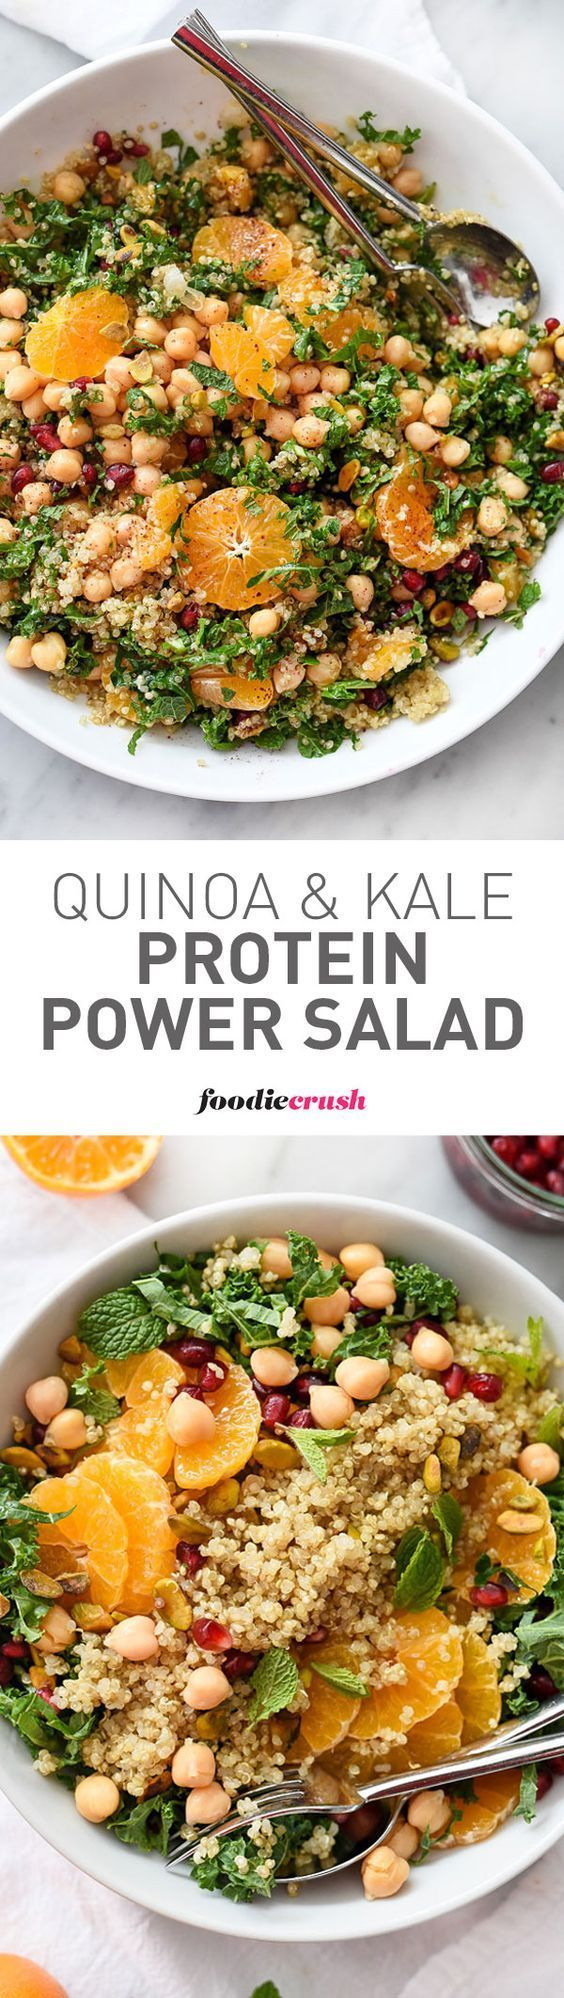 Quinoa, chickpeas (garbanzo beans) and pistachios add protein and healthy fat to this simple and seasonal kale salad, making it a favorite side dish or vegetarian main meal